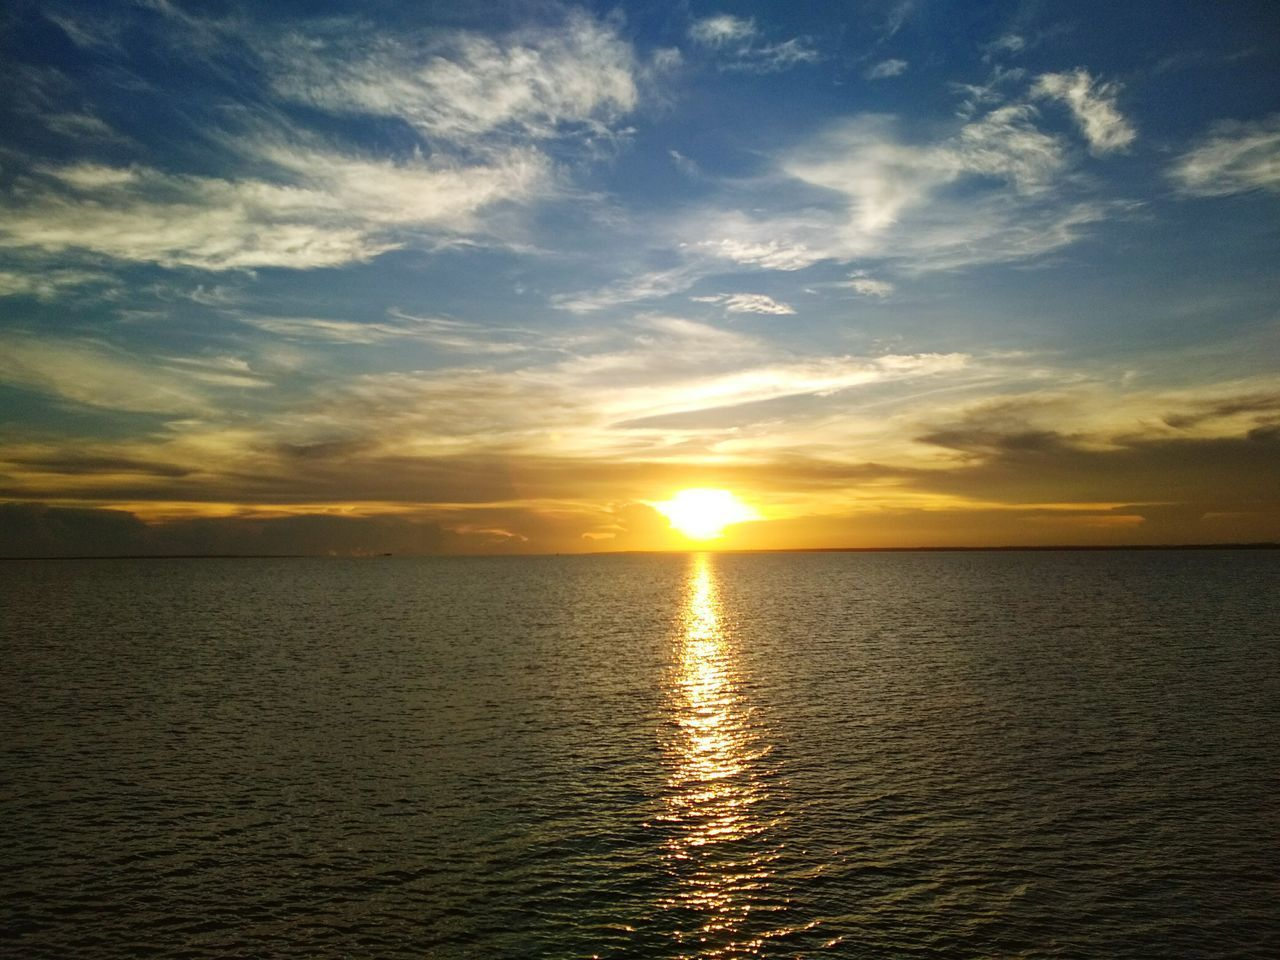 sunset, sun, sea, scenics, water, tranquility, nature, beauty in nature, sky, tranquil scene, sunbeam, reflection, idyllic, sunlight, horizon over water, no people, rippled, silhouette, holiday, outdoors